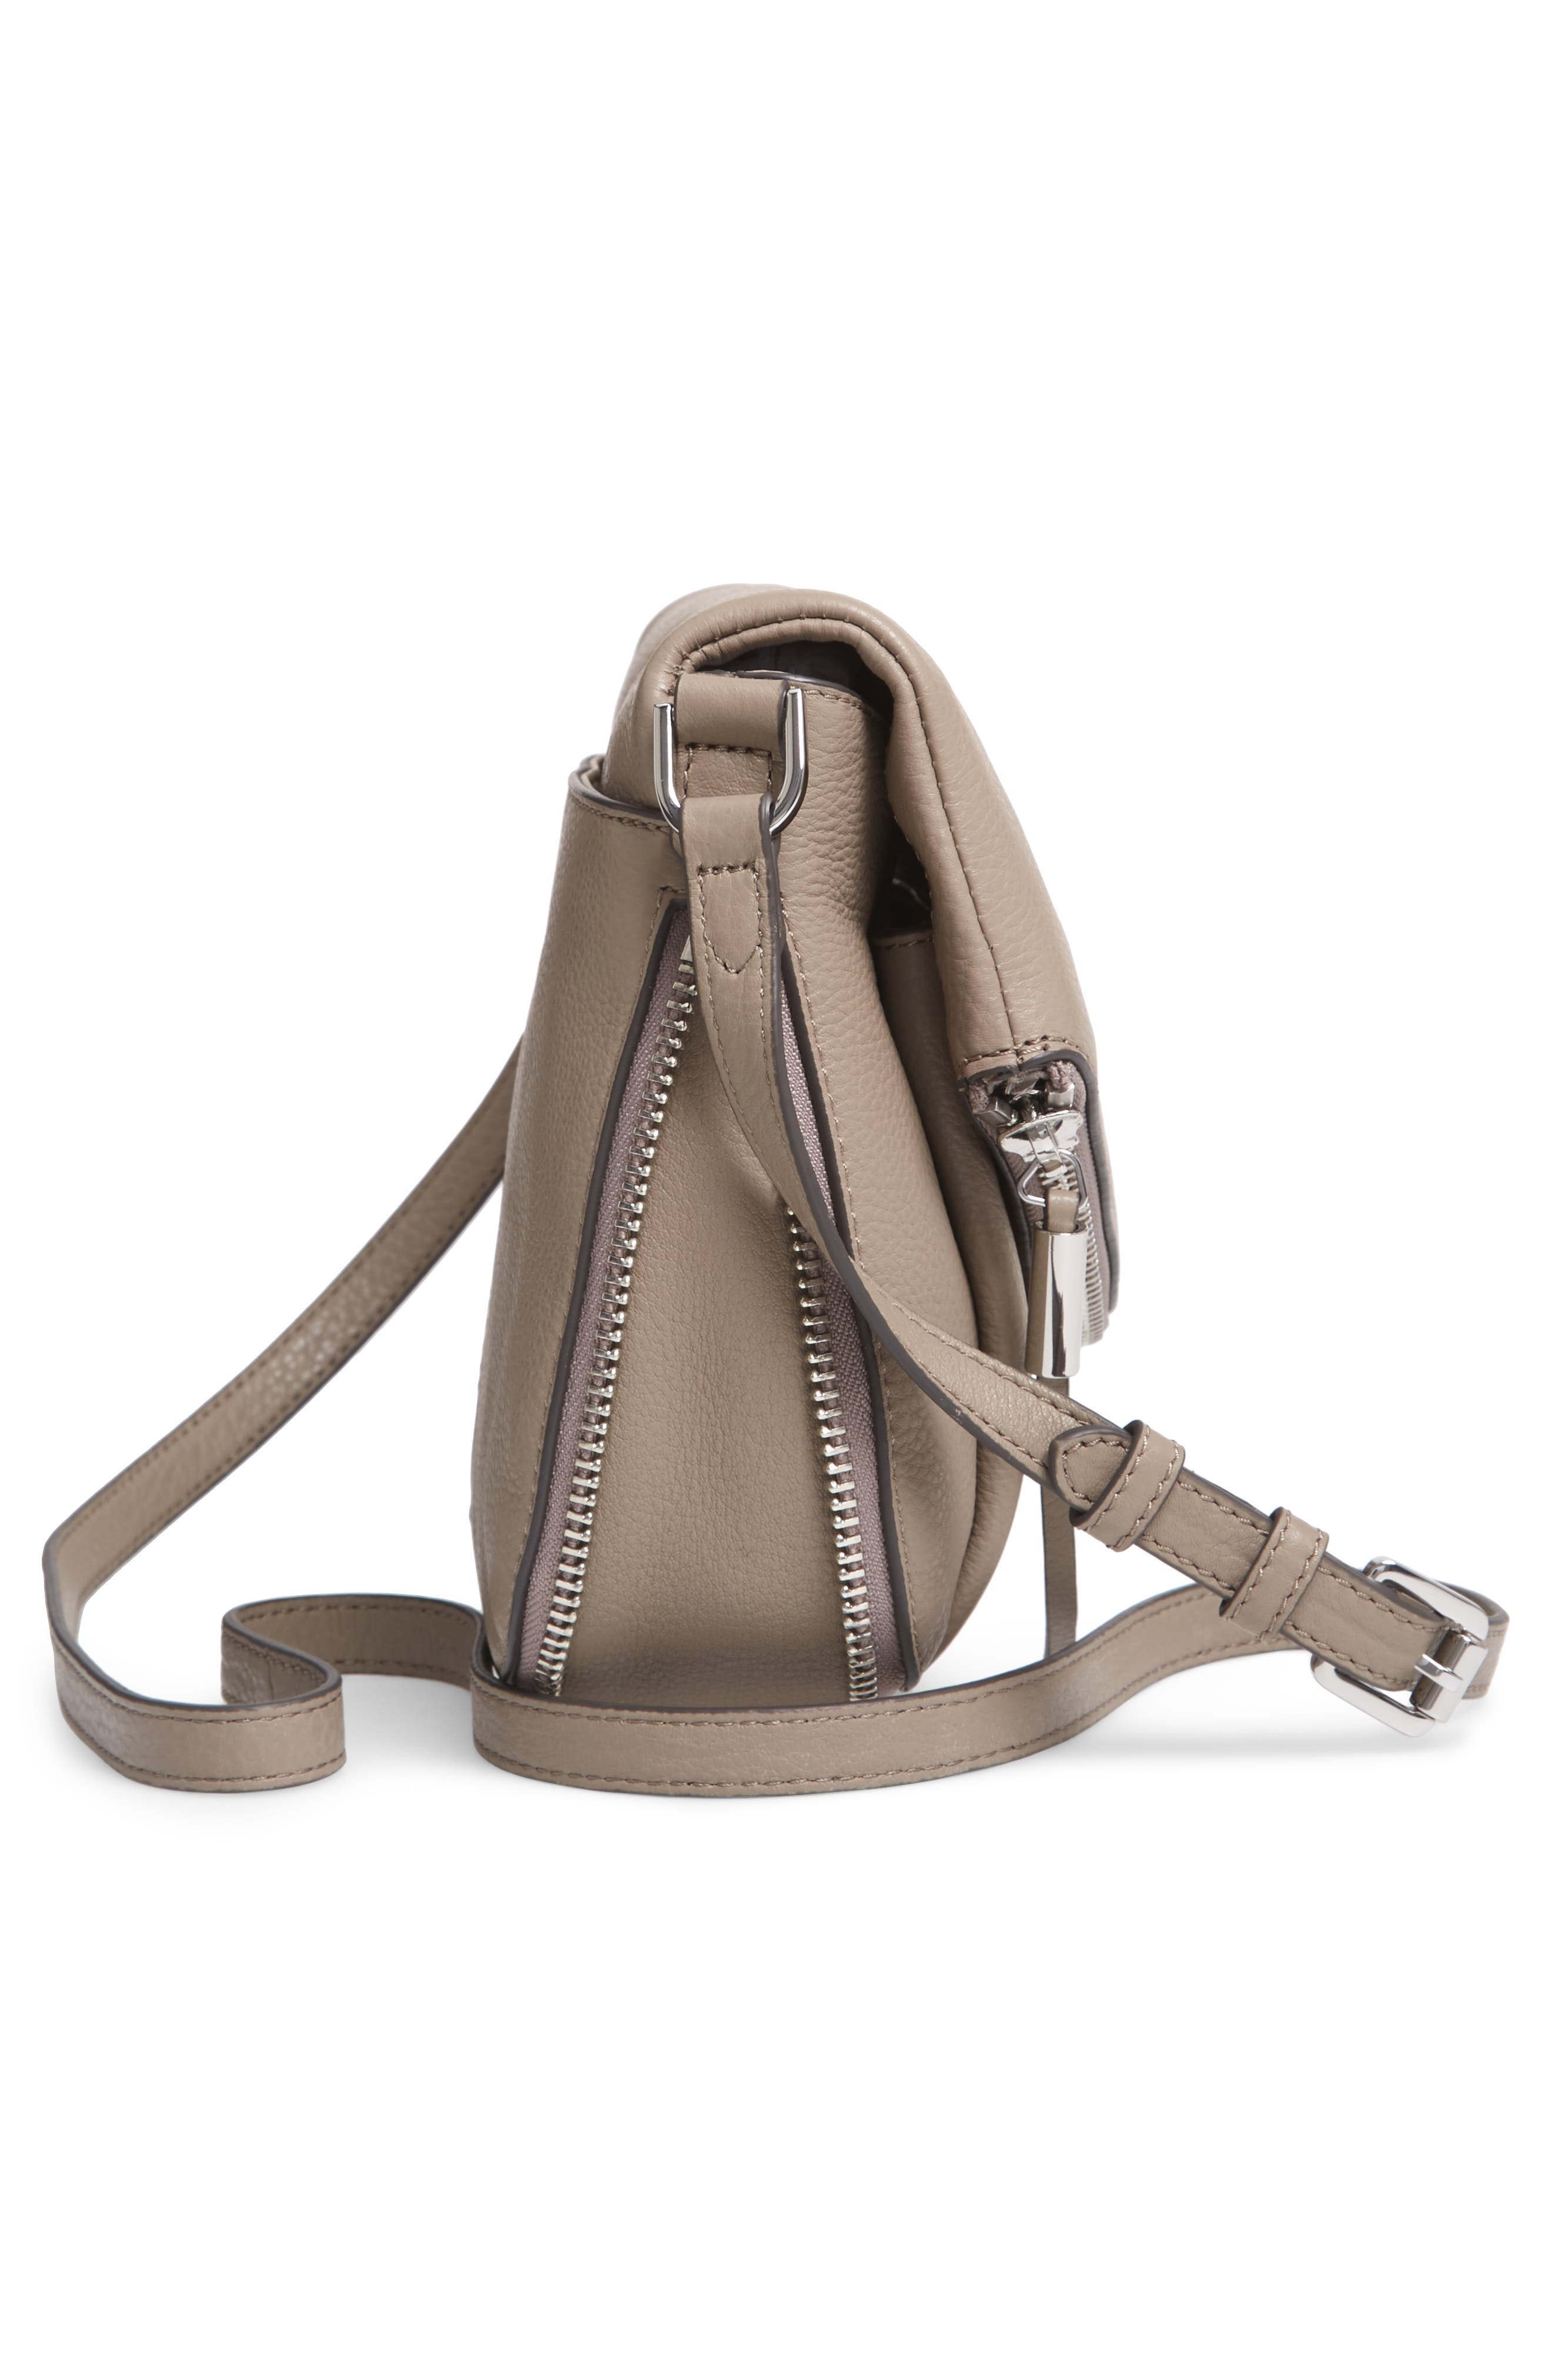 Key Leather Crossbody Bag,                             Alternate thumbnail 5, color,                             TRANQUILITY